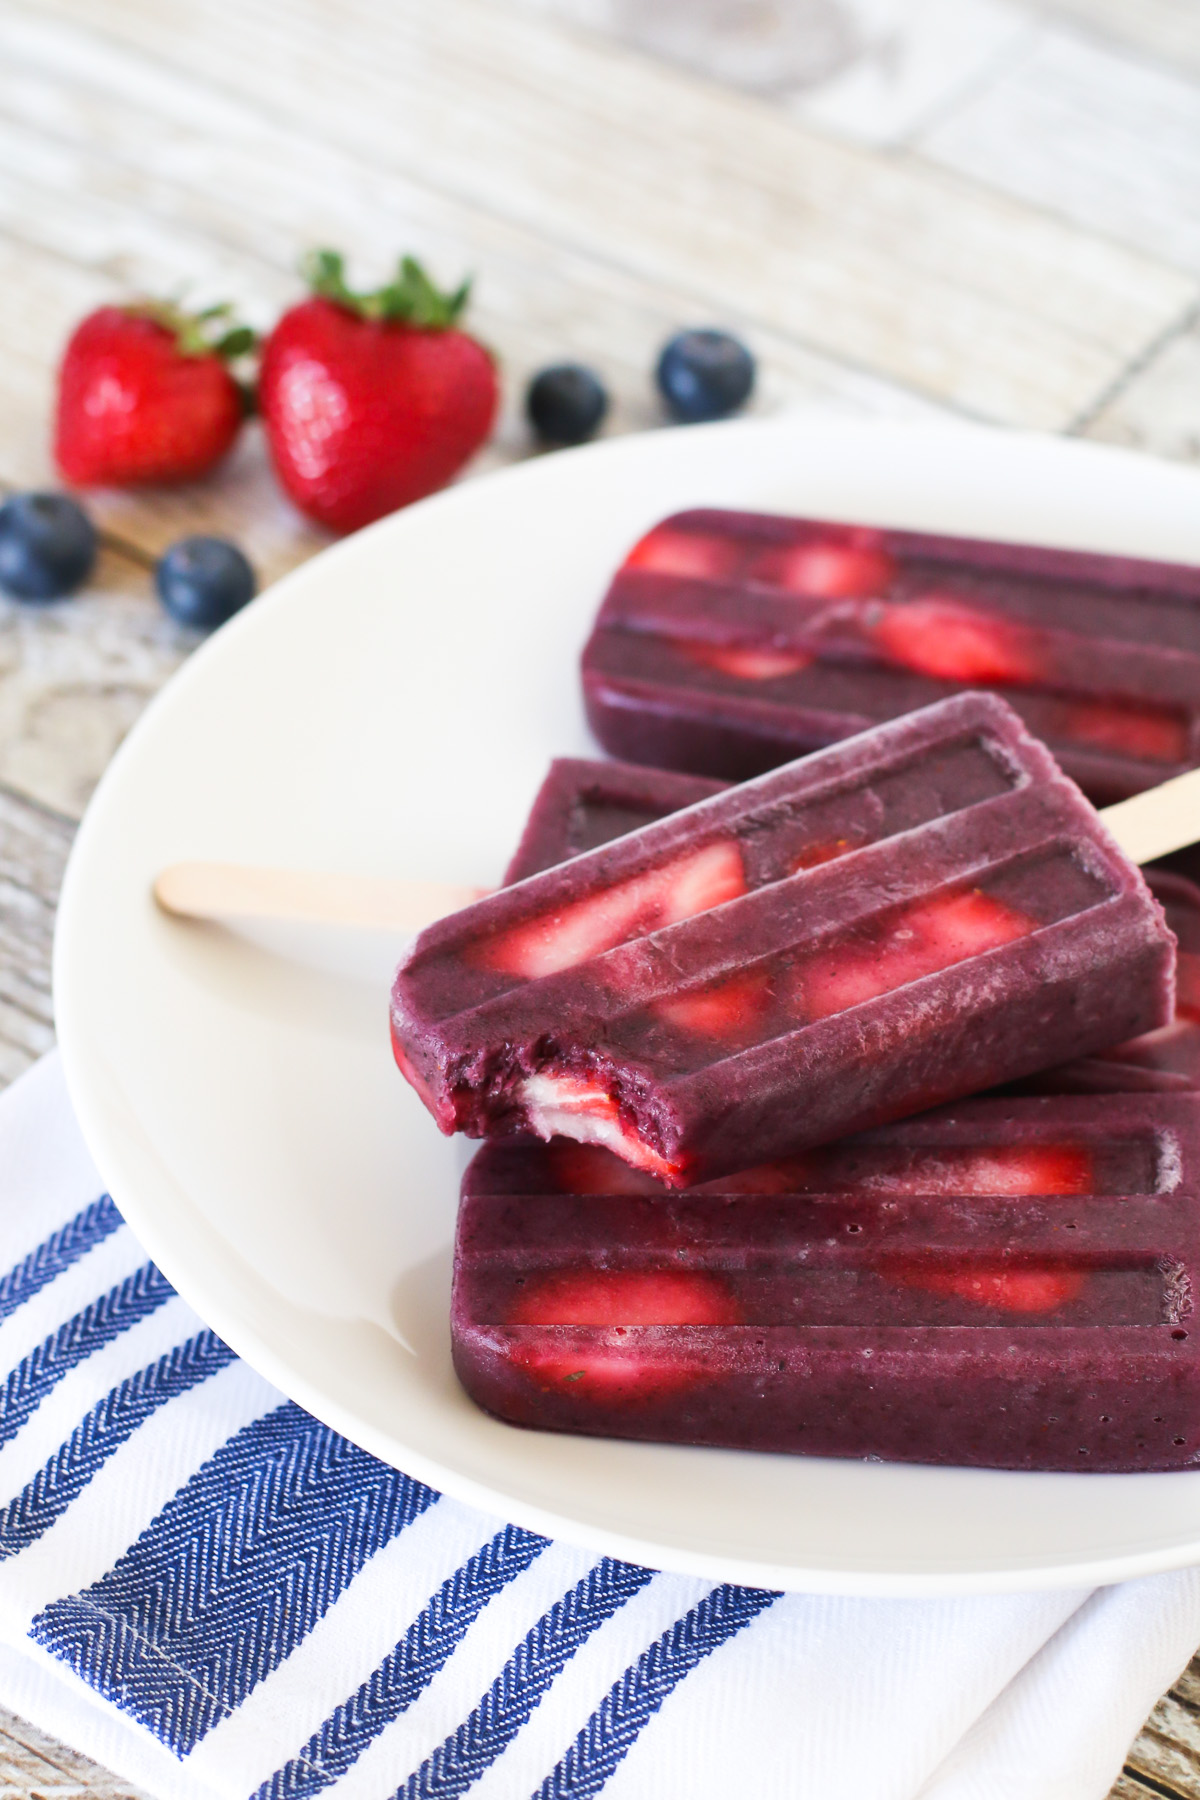 Berry Smoothie Popsicles. These perfect for summer smoothie popsicles are made with blueberries, bananas, flaxmilk and slices of fresh strawberries.